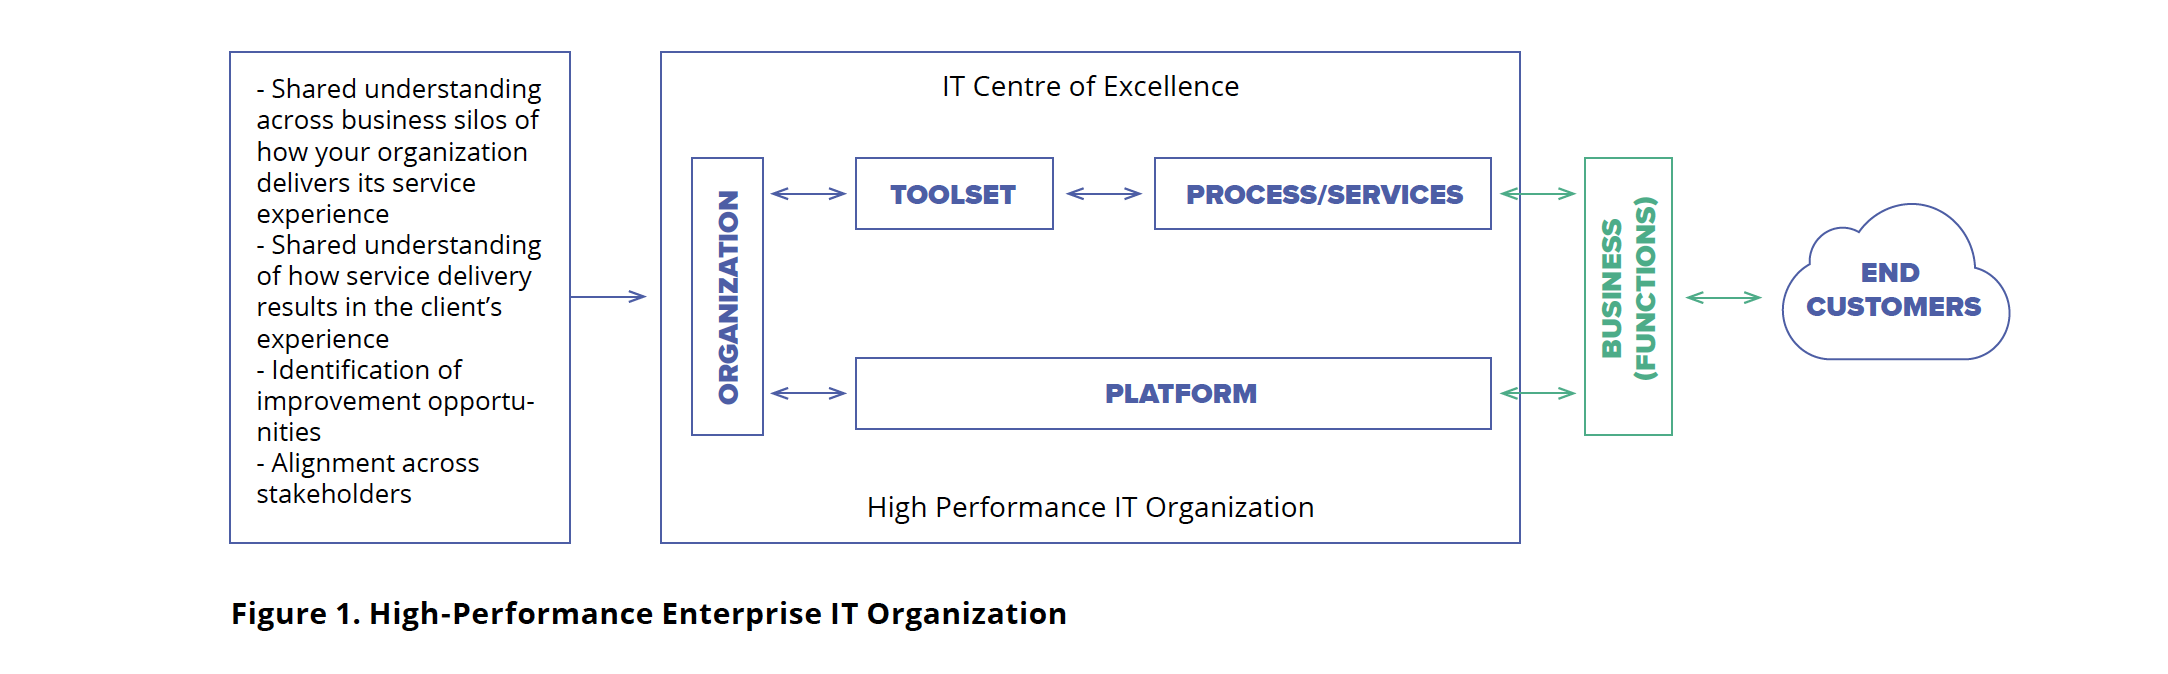 high-perfromance-it-org